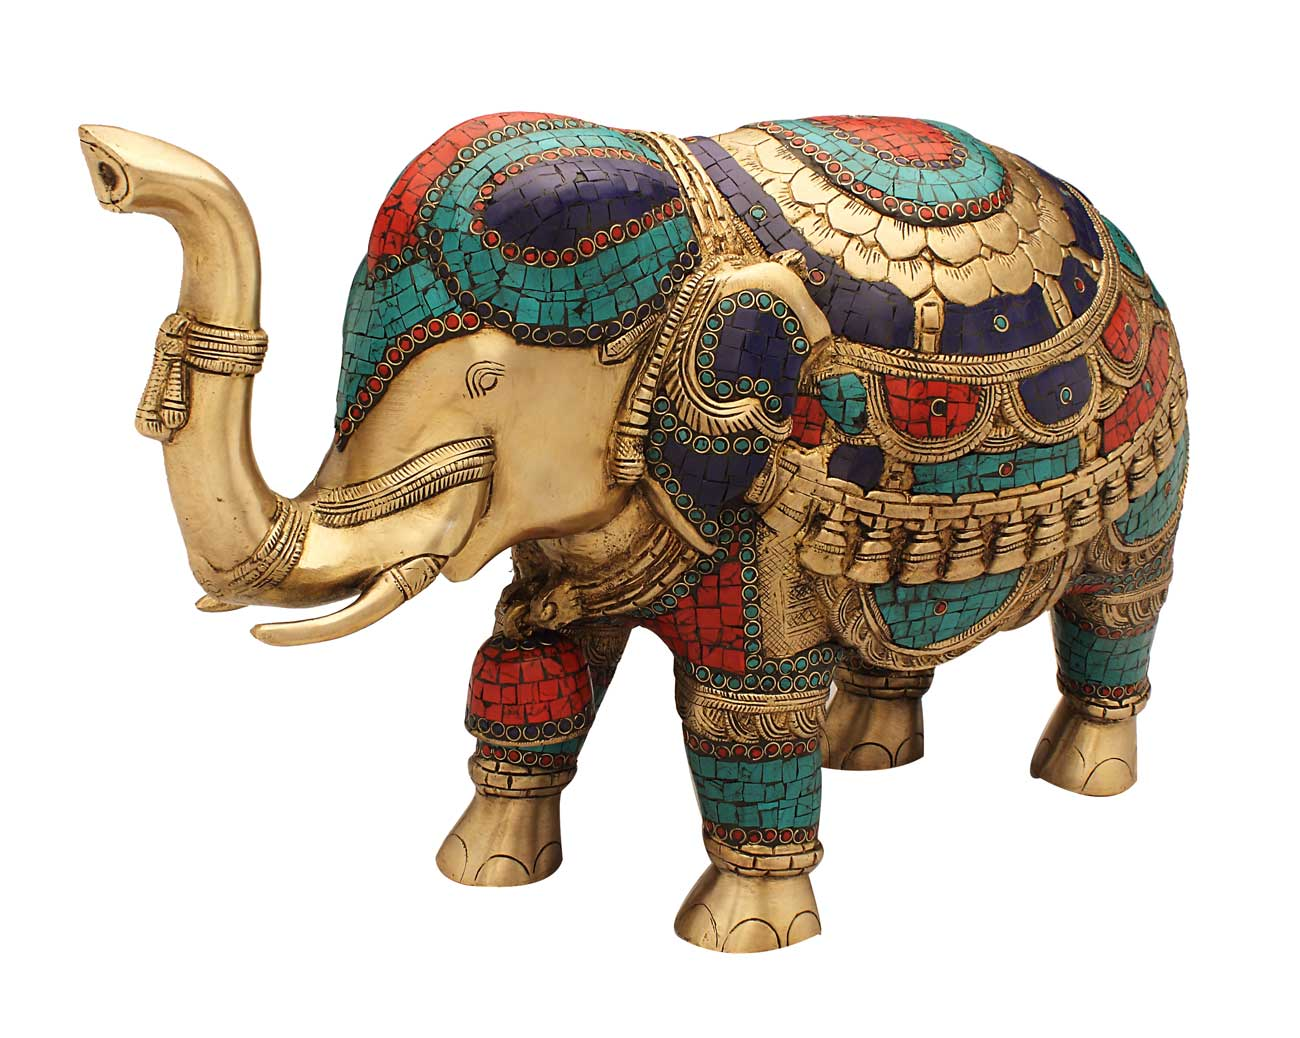 Elephant Idol Fengshui Item Turquoise Coral Color Antique Home D Cor 15 Ebay